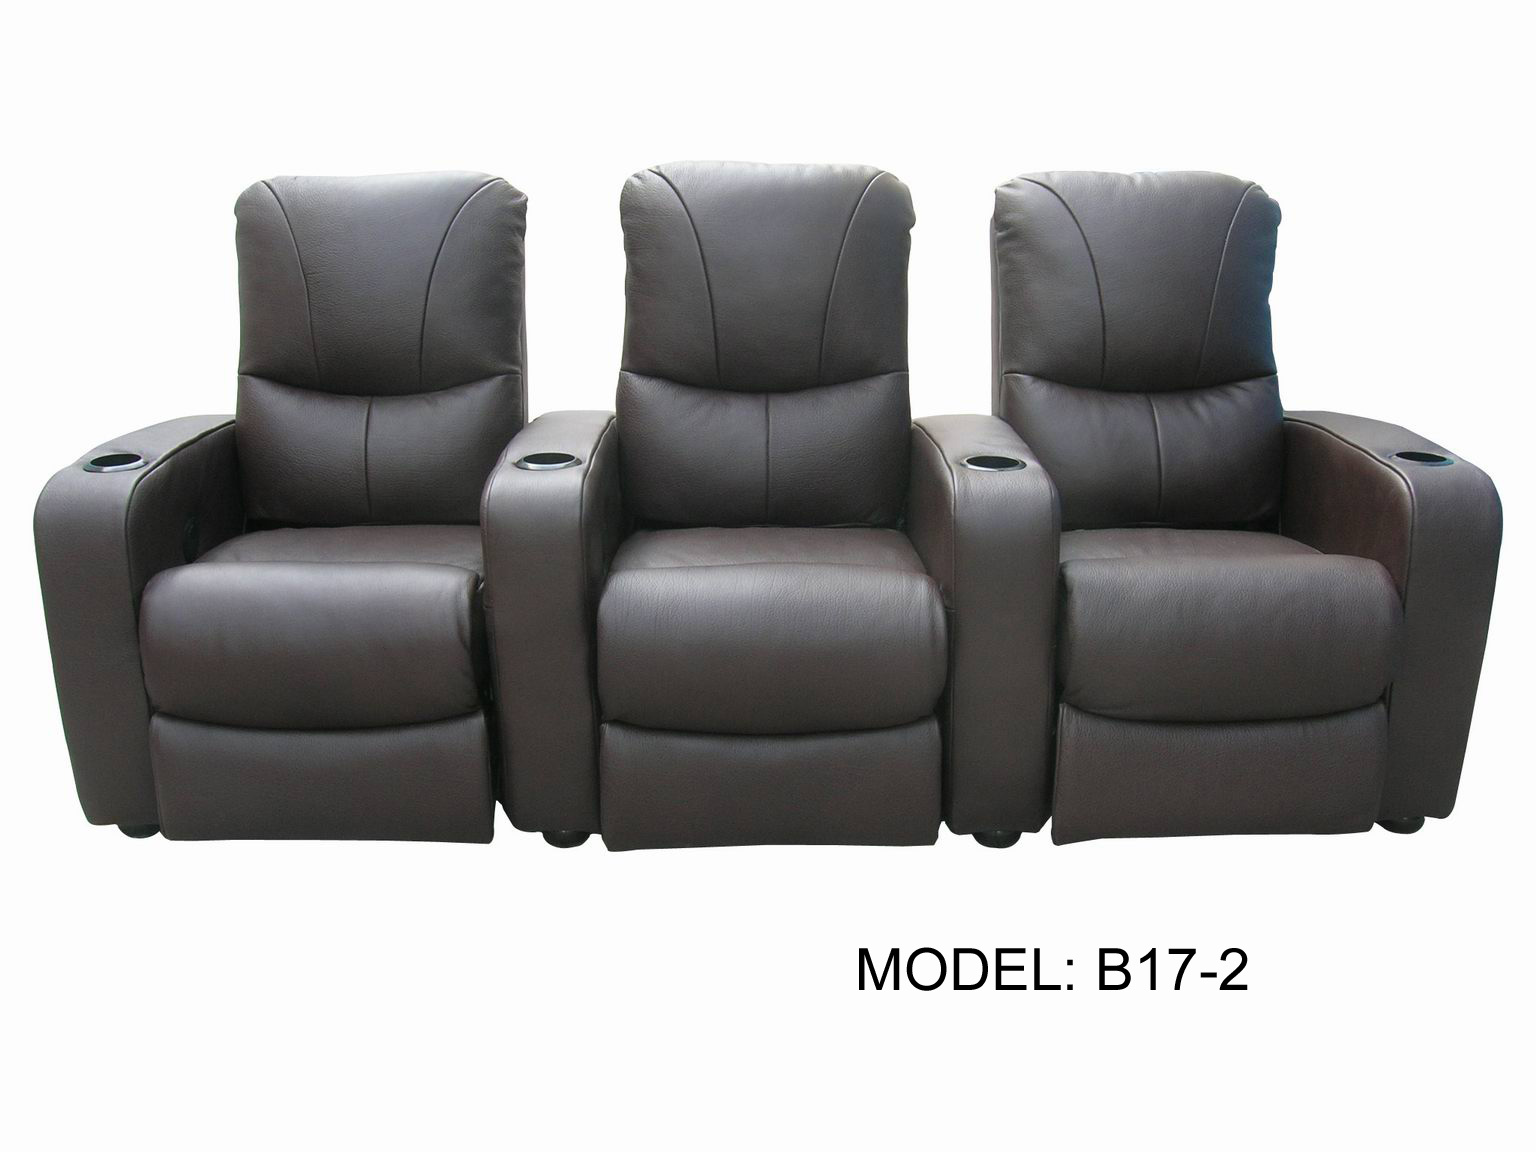 Home theater sofa with recliner sofas Home theater furniture amazon